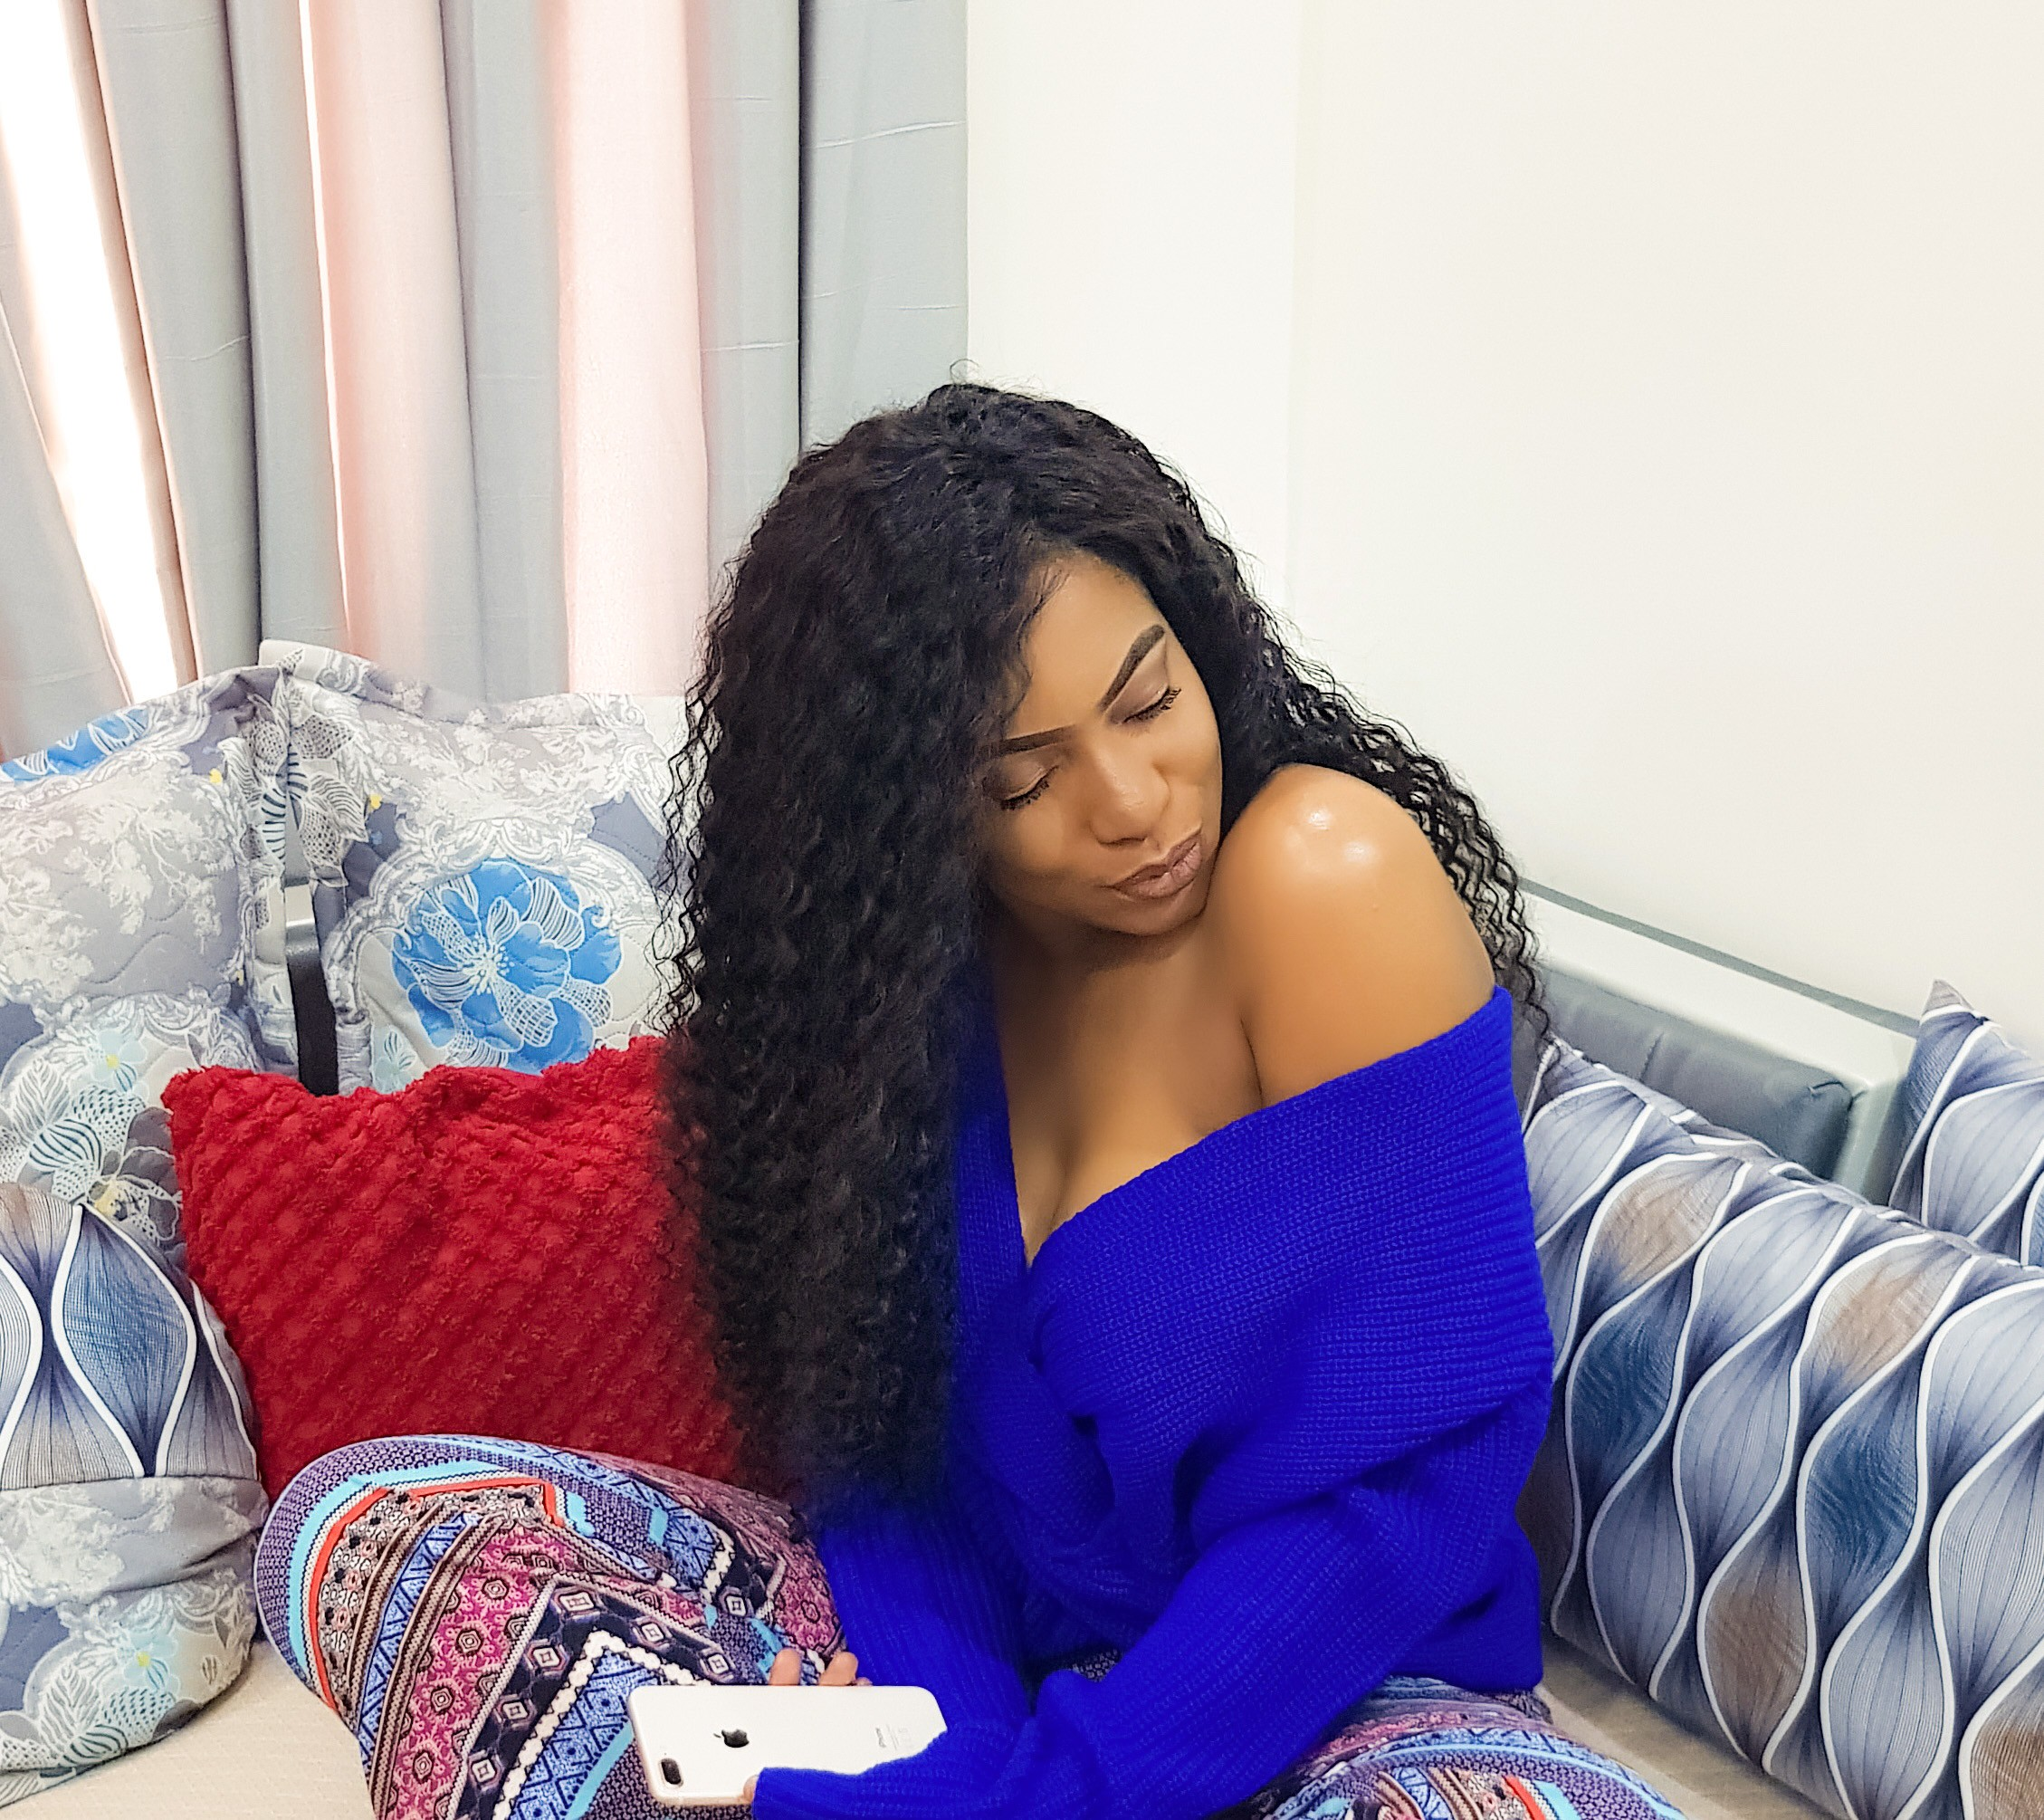 Chika Ike shows off cleavage in new sexy photos